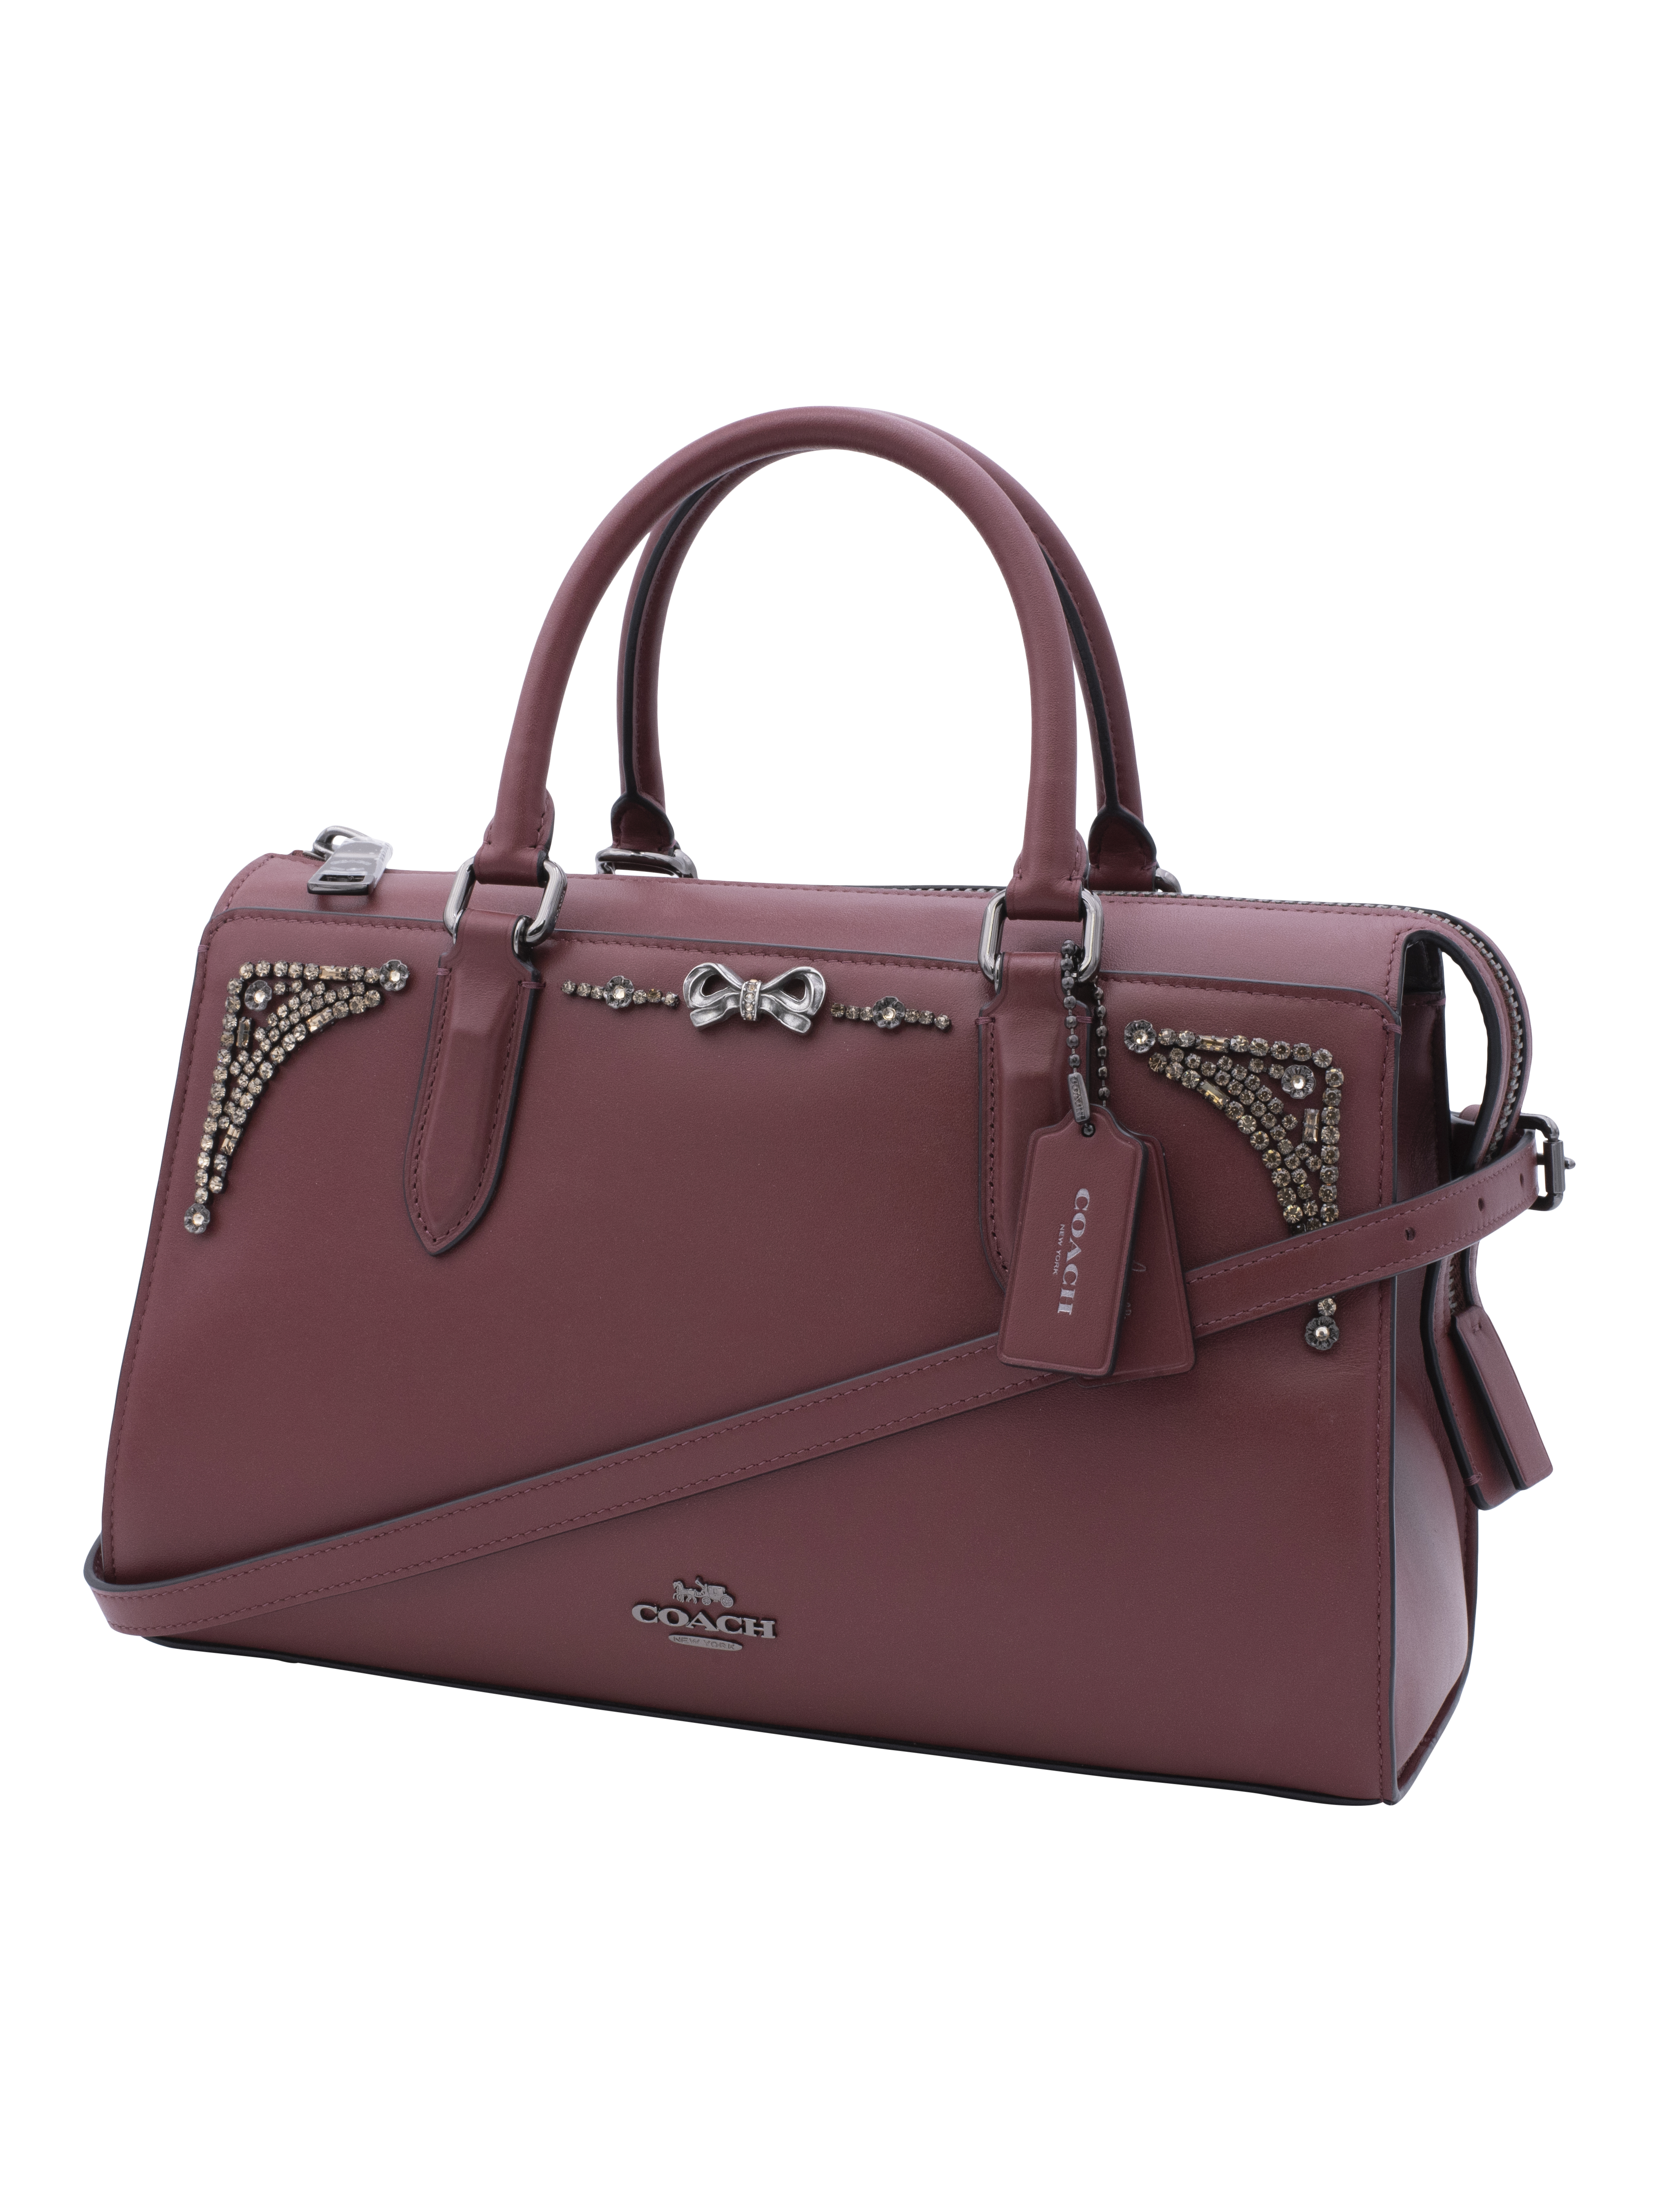 COACH Womens Crystal Embellished Selena Bond Bag Gunmetal/Wine